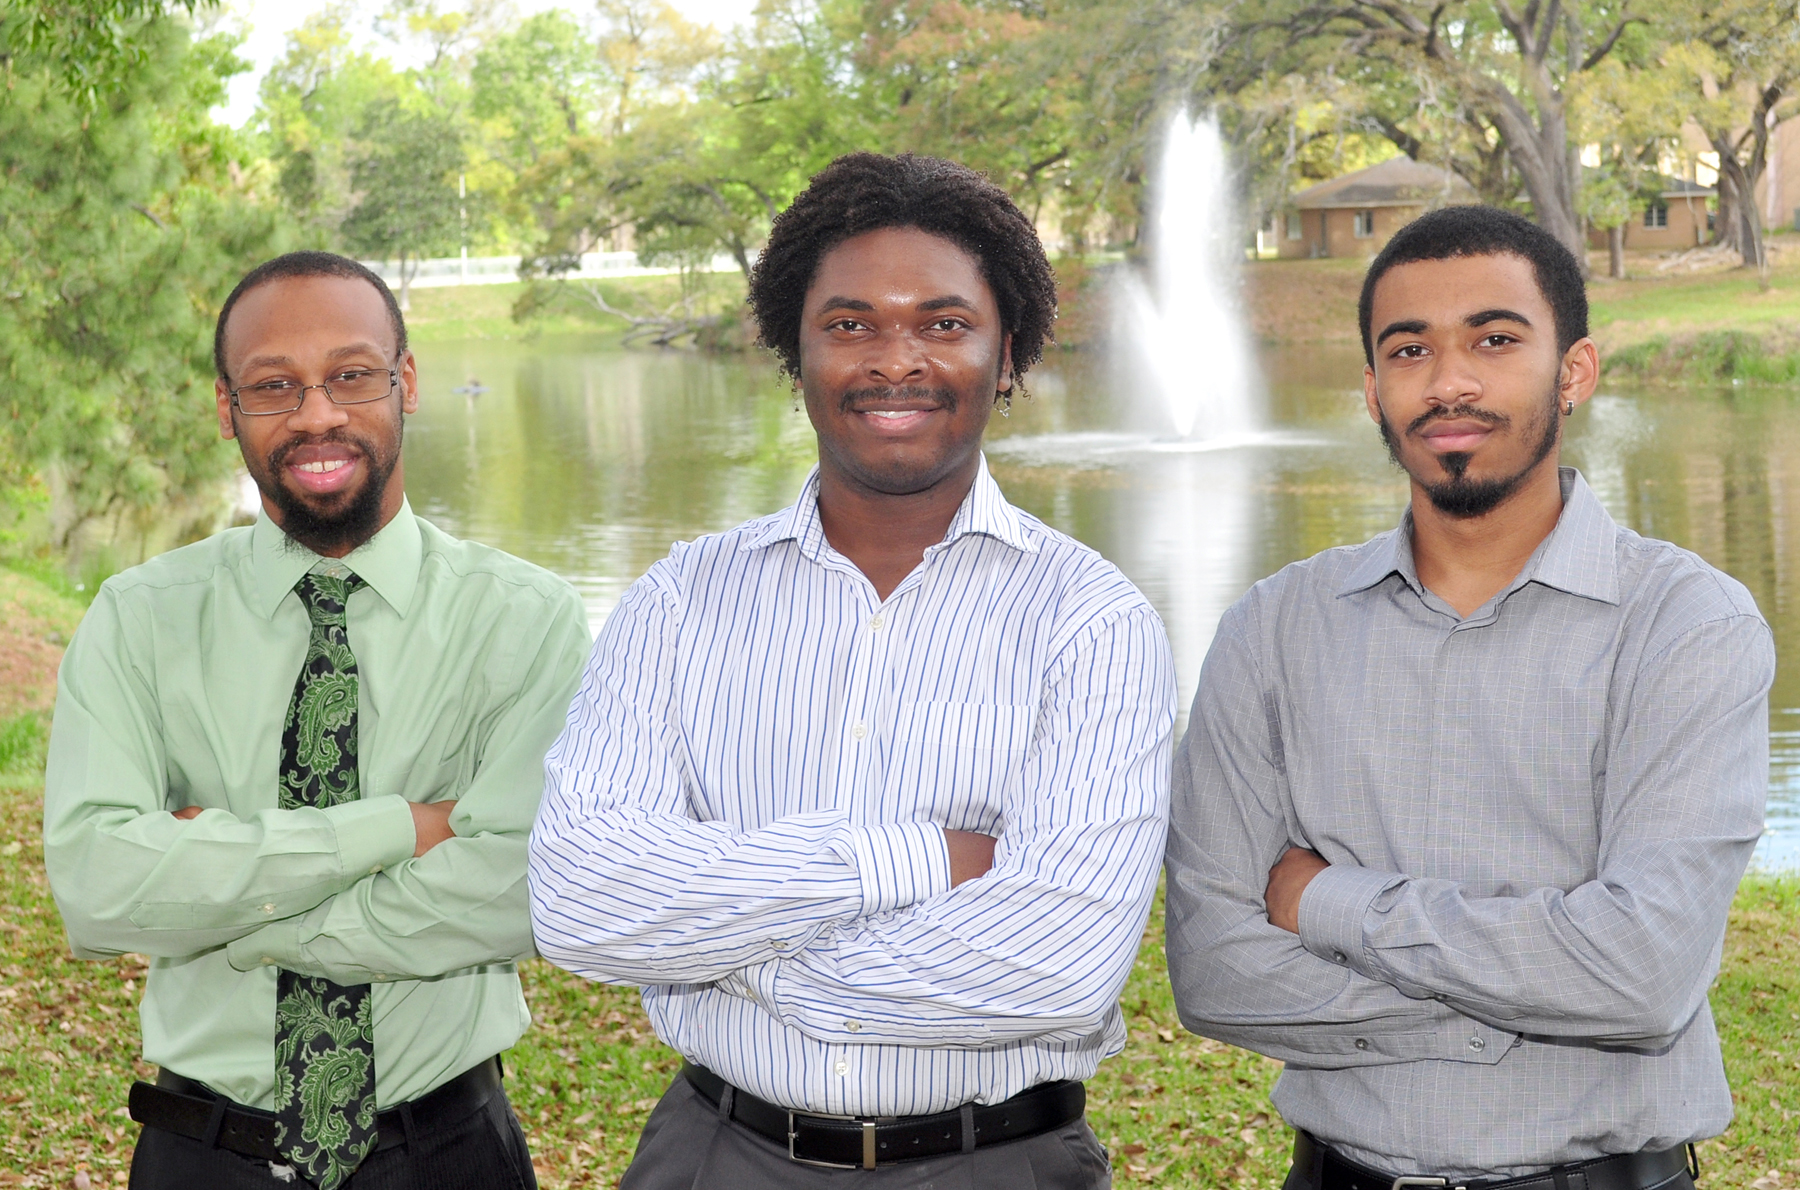 (left to right) Bennie Brown, Nicholas Lockett, and Ryan Alexander.